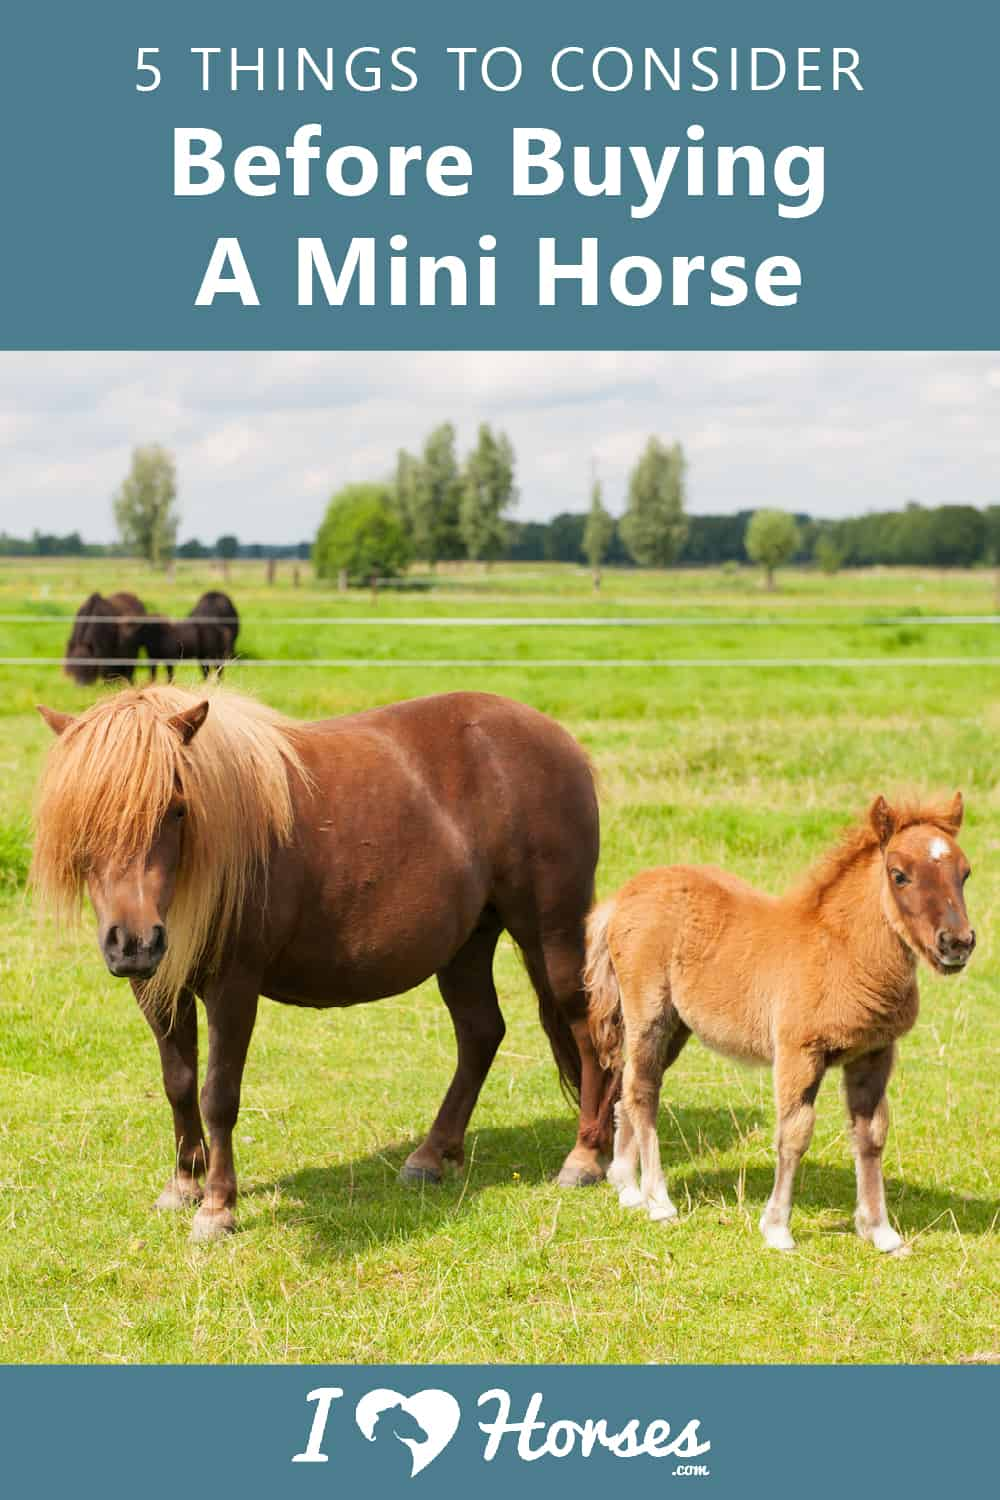 Things To Consider Before Buying A Mini Horse-01